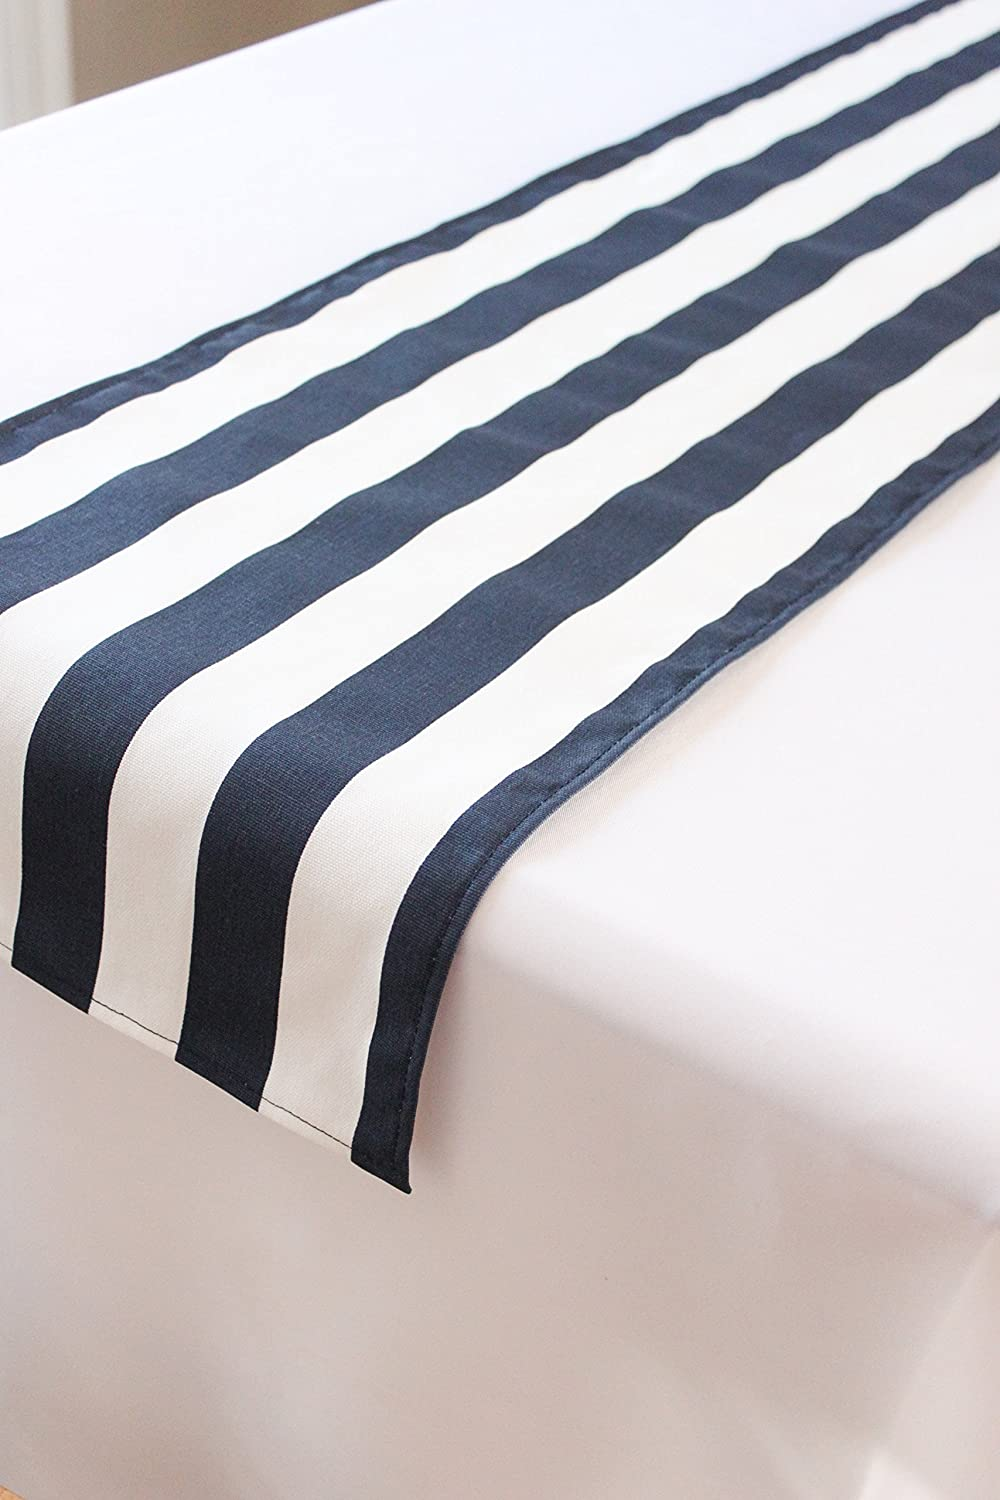 12x36 inch Navy and white striped nautical wedding baby shower table runner